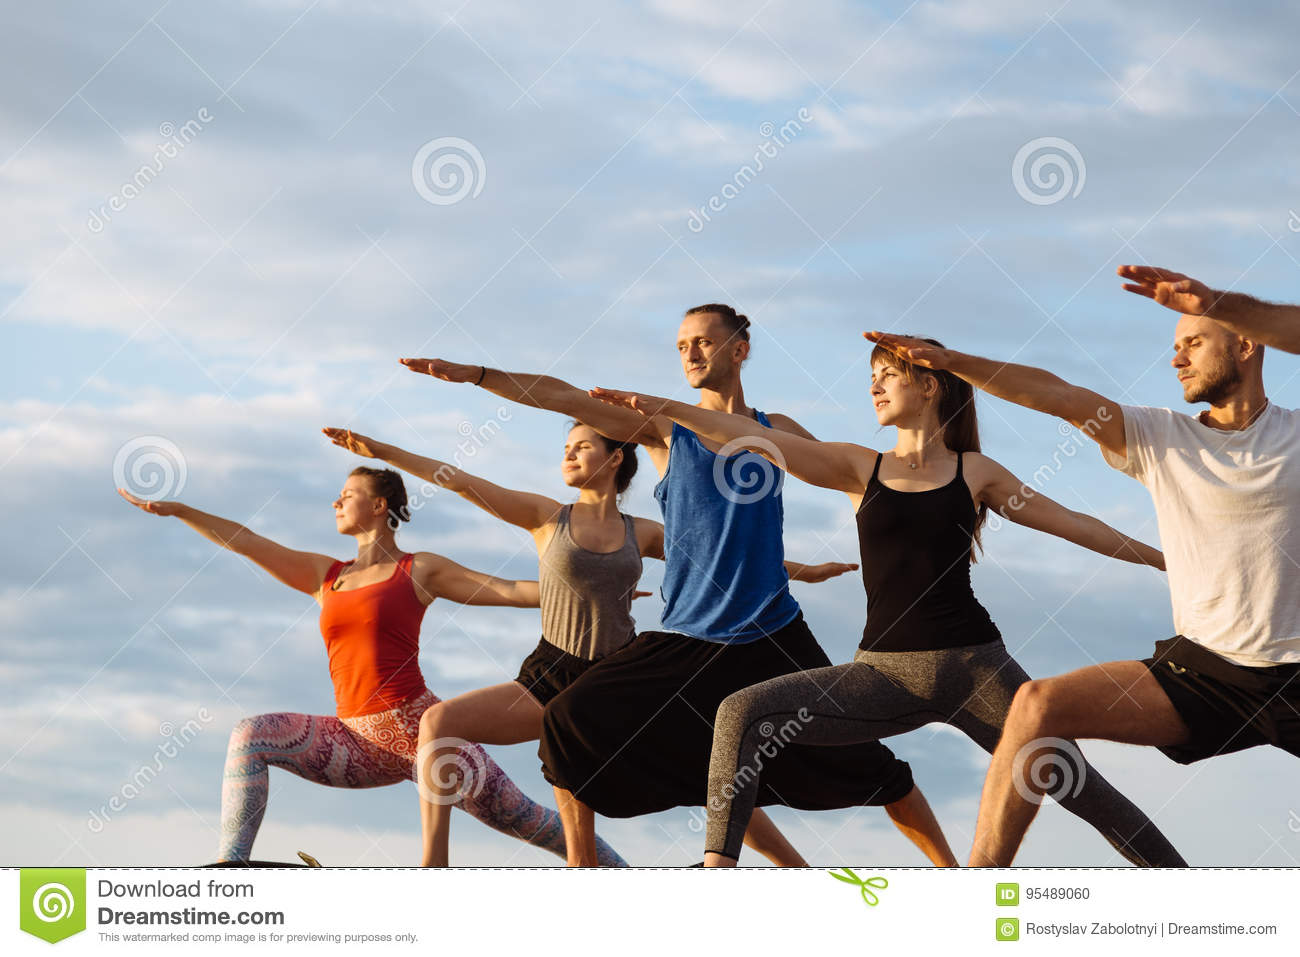 Mixed race group of people exercising yoga healthy lifestyle fitness warrior poses